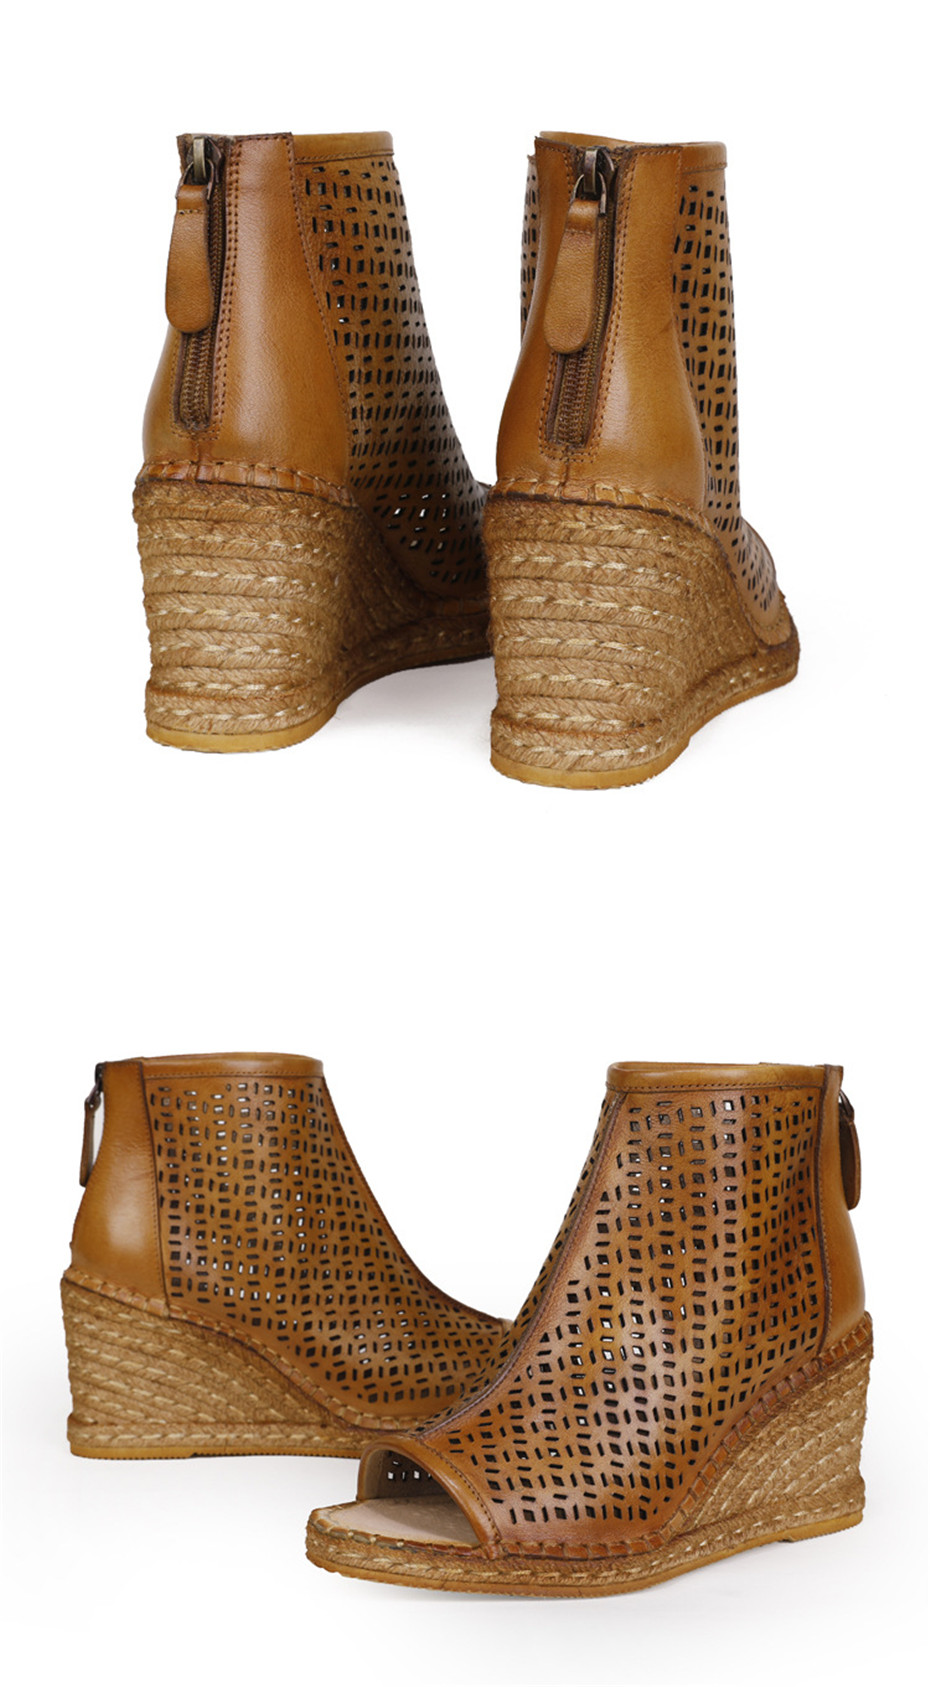 Spring Summer 2020 New Women Wedges Sandals Genuine Leather Peep Toe Hollow Woven High Wedge Heels Shoes Woman High-Top Sandals (15)